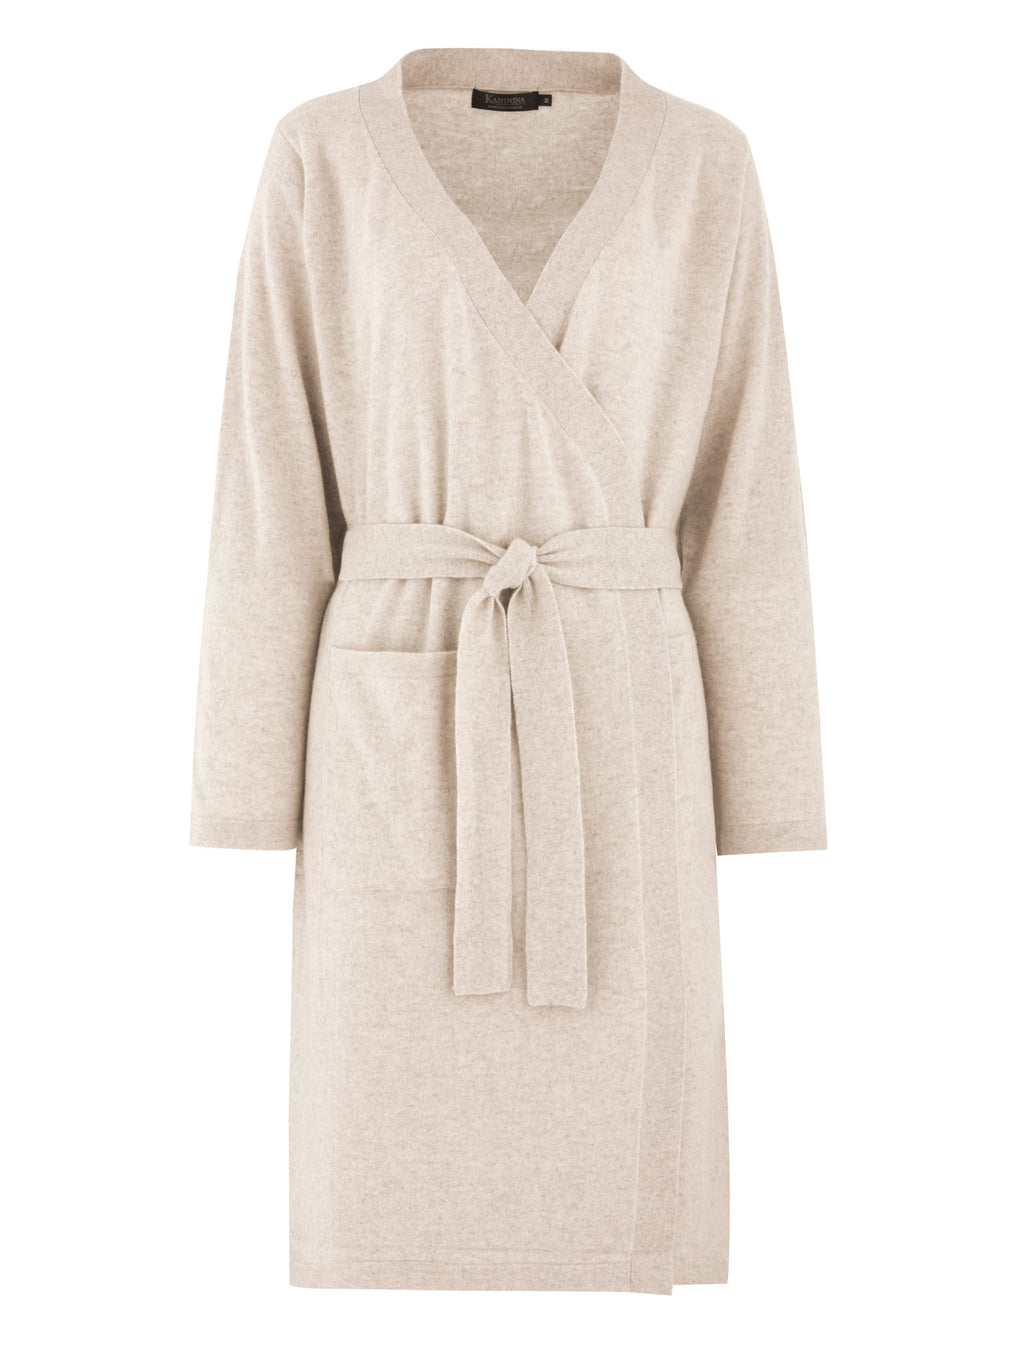 Cashmere robe Classic in 100% cashmere by Kashmina